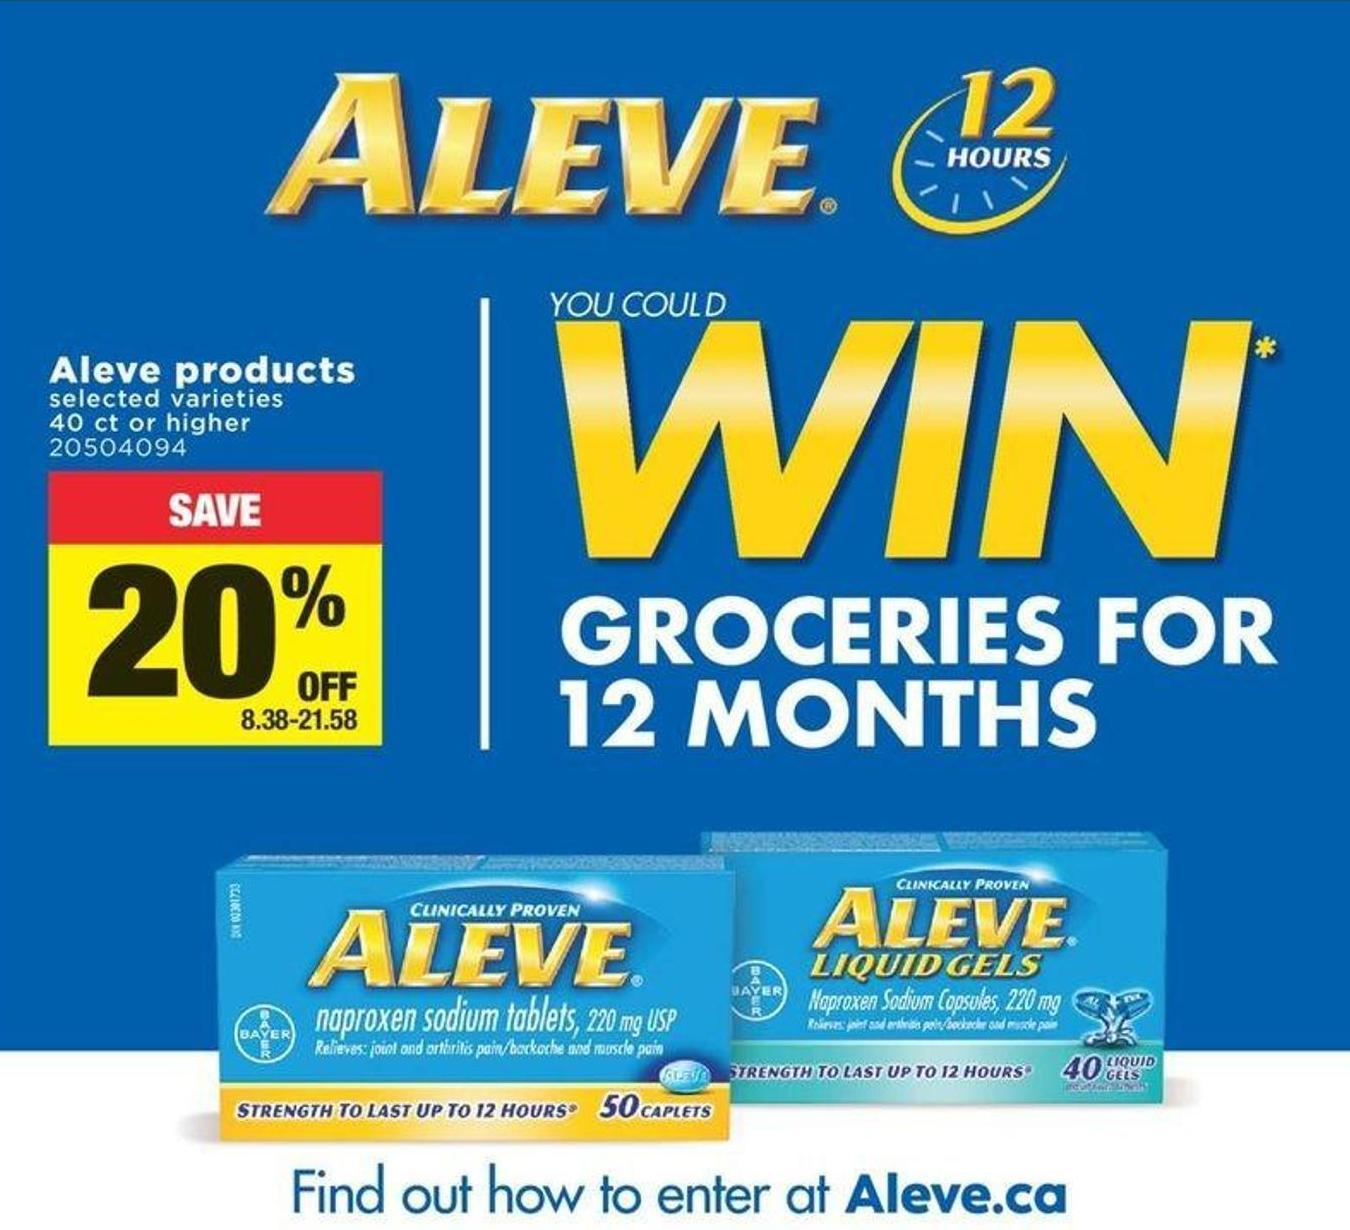 Aleve Products - 40 Ct Or Higher